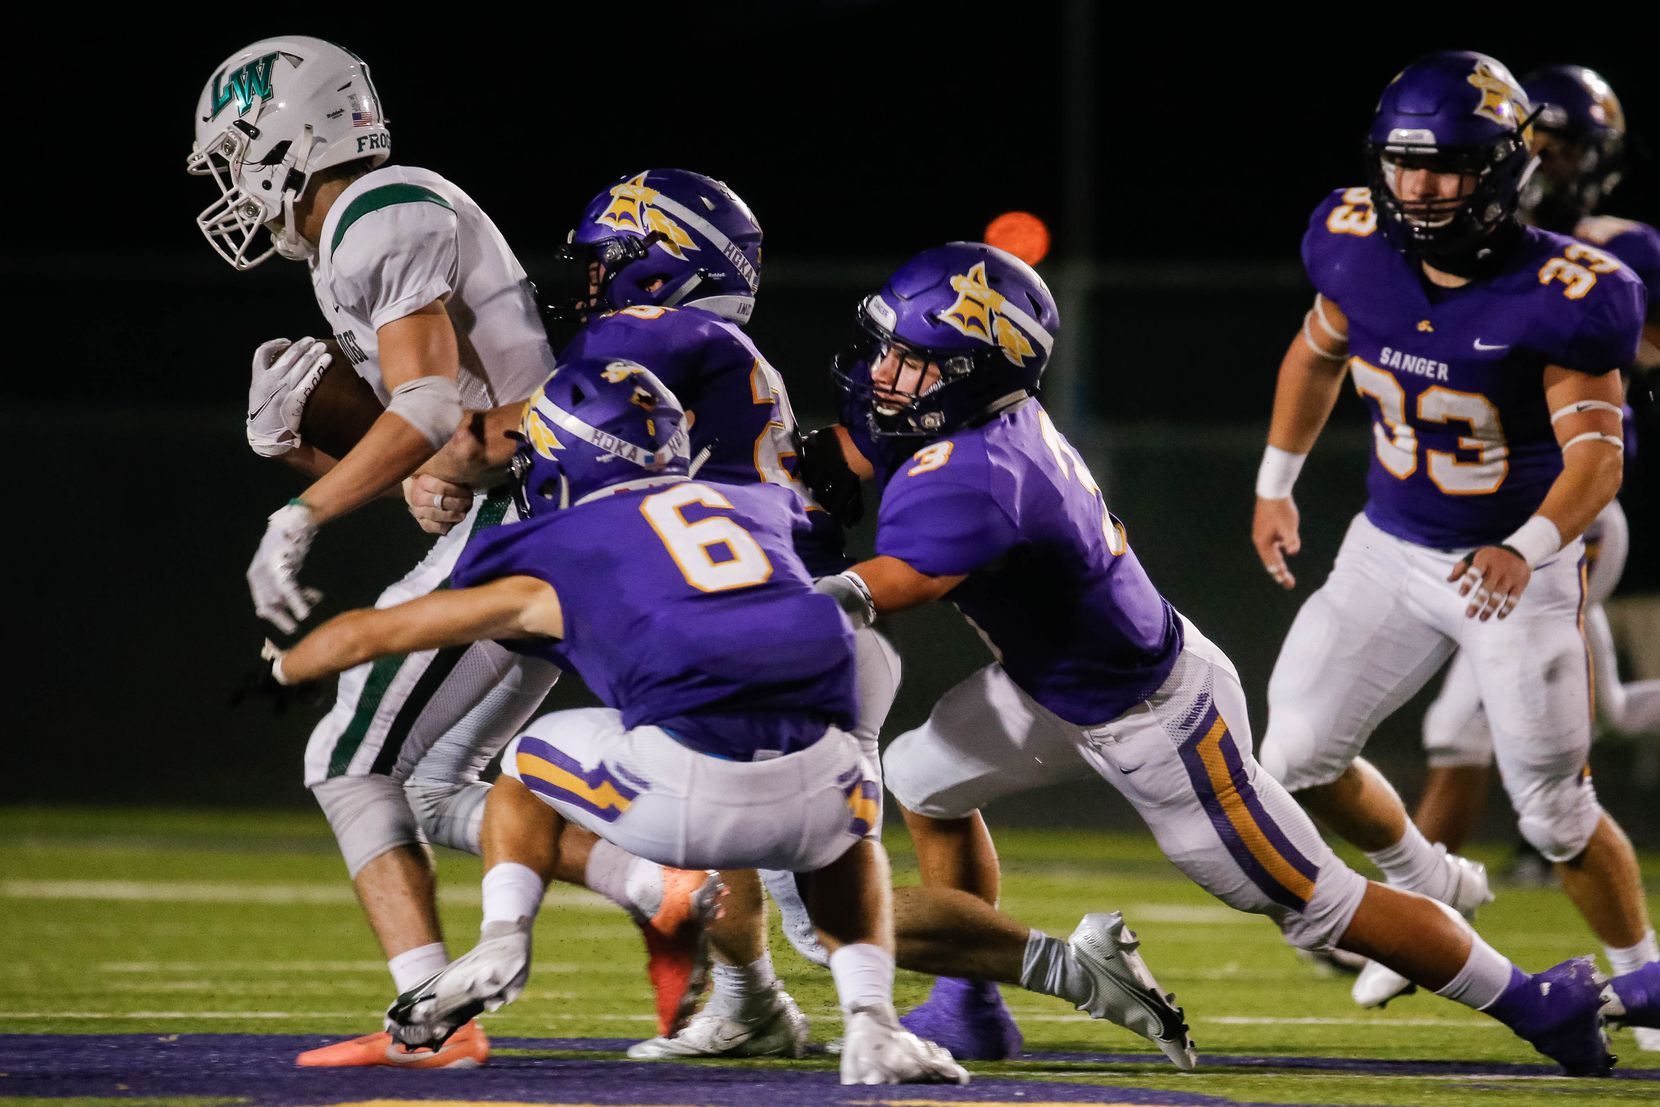 Lake Worth High School's Mark Fulkerson (5) is taken down by the Sanger High School's defense during the second half of a game on Sept. 4, 2020 in Sanger. Sanger won 49-35. (Juan Figueroa/ The Dallas Morning News)